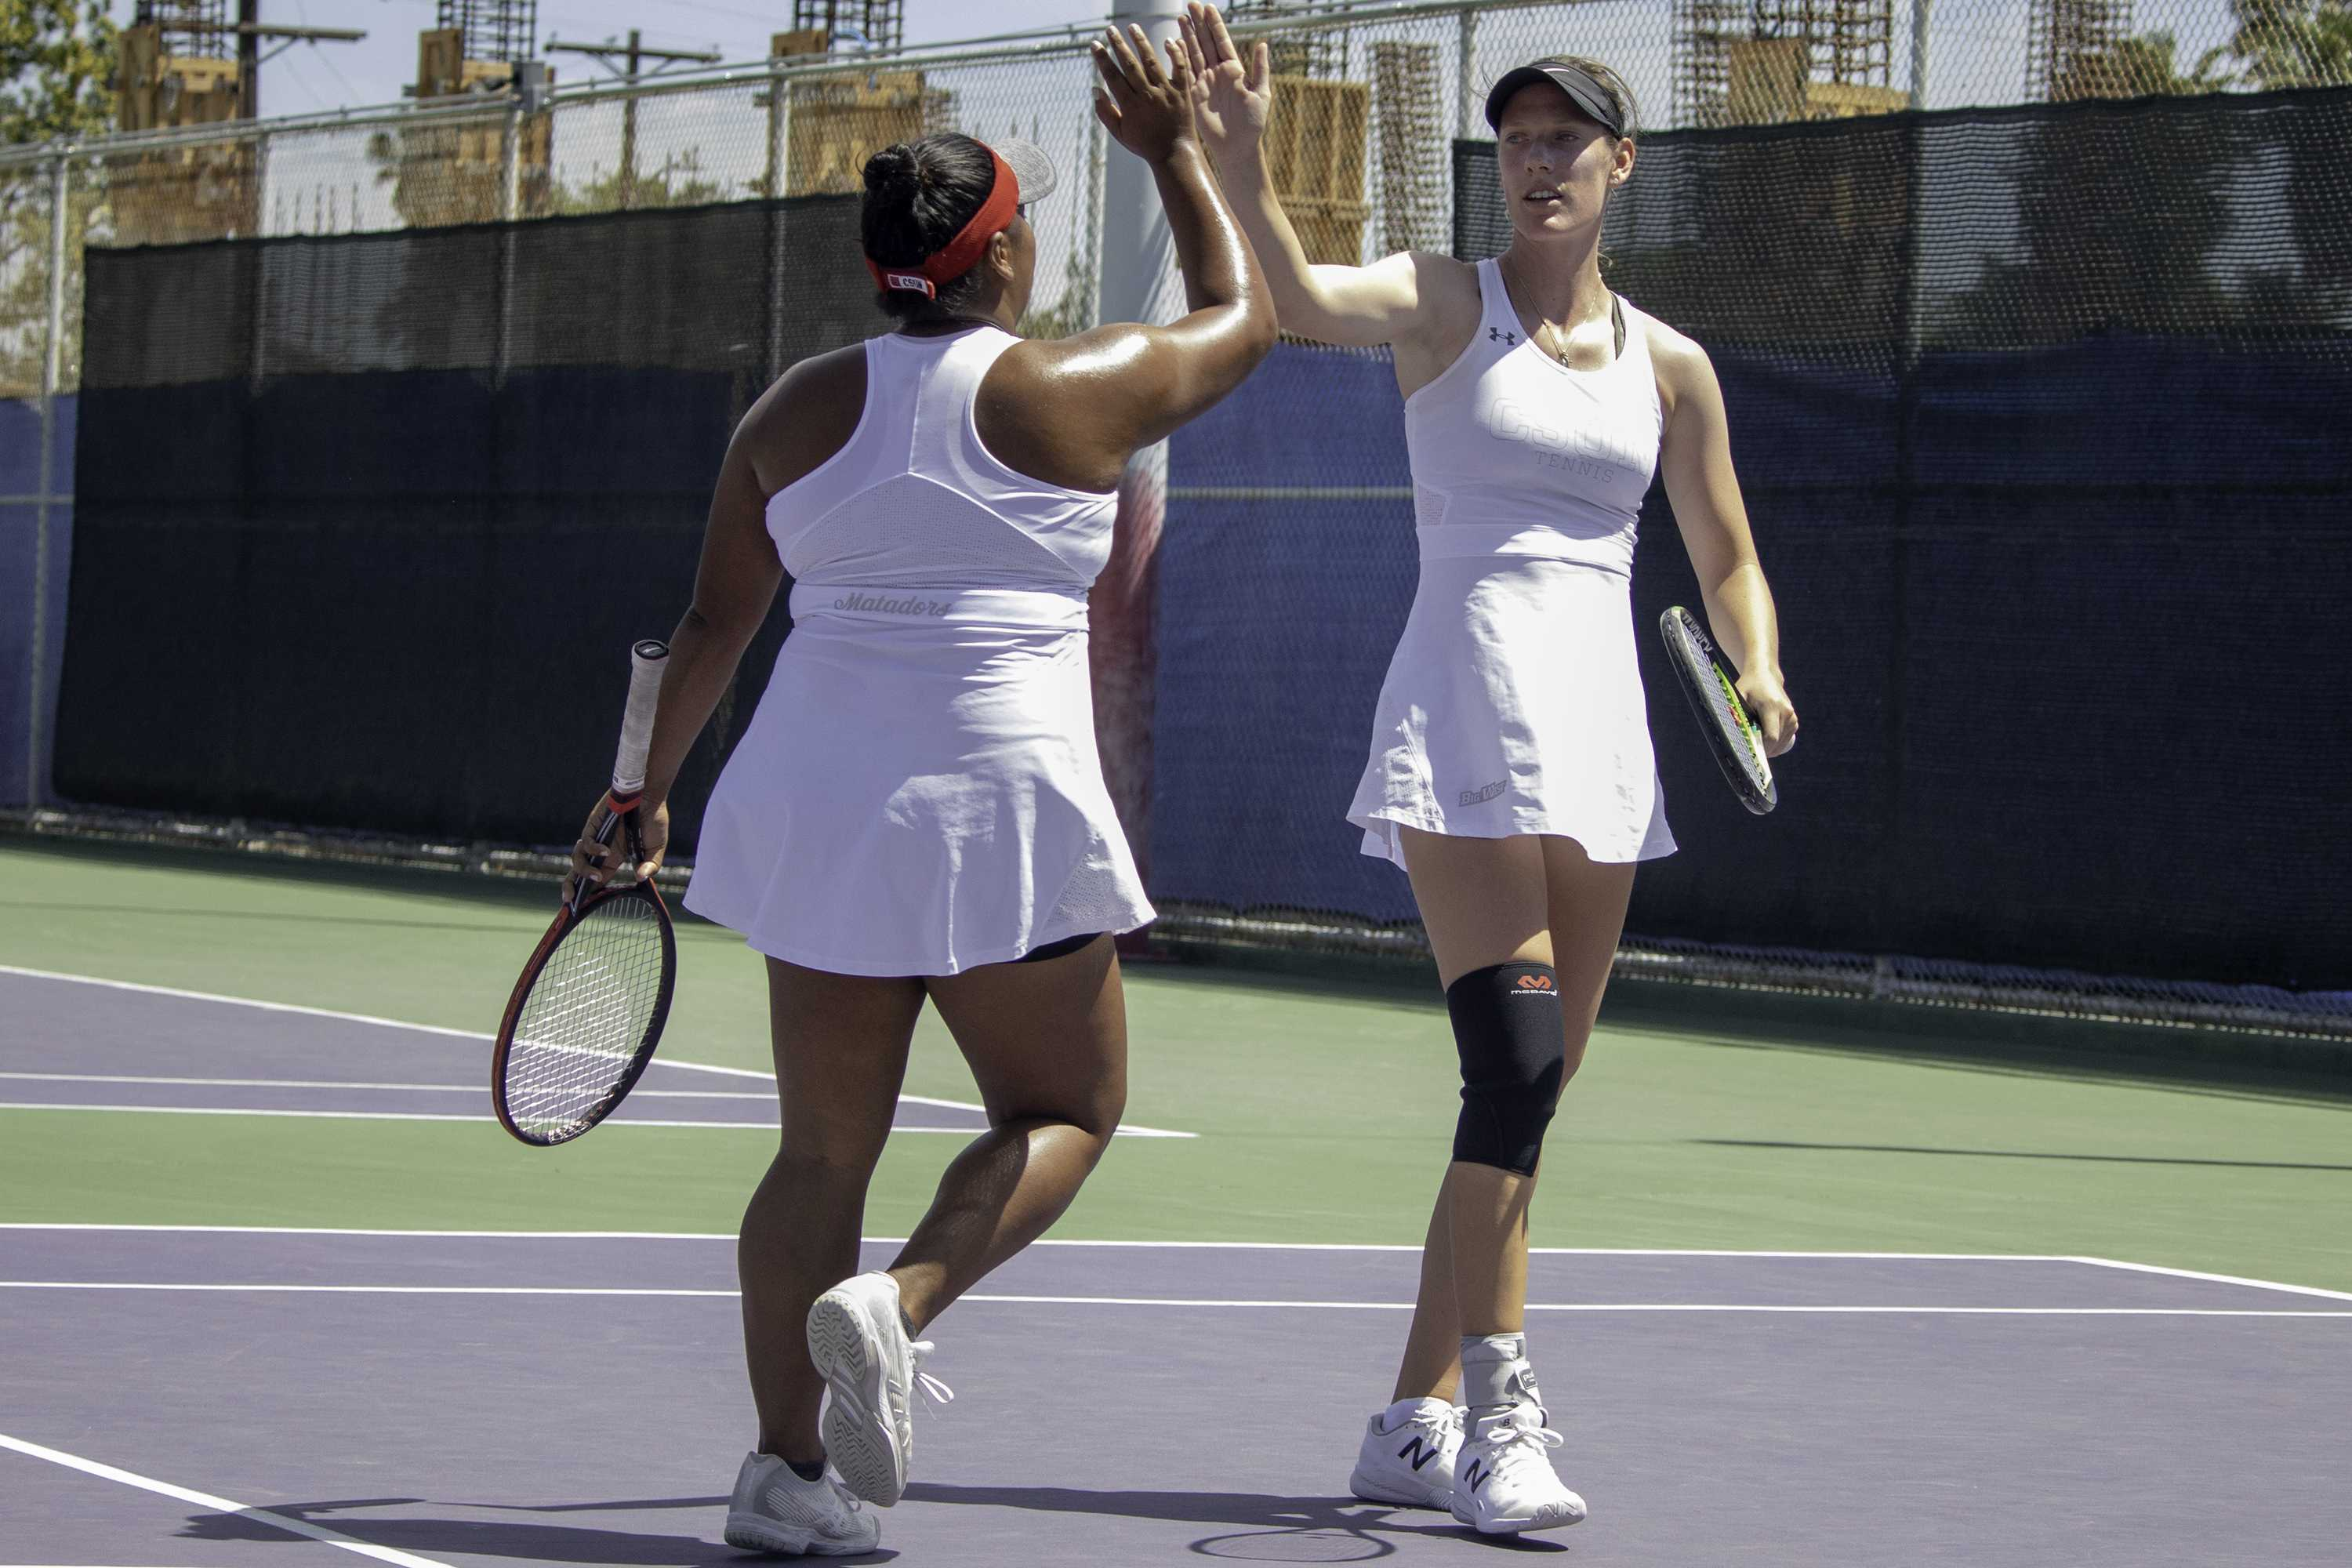 Seniors Monika Van de Vondel (right) and Skyla Alcon (left) high-five each other during their final home doubles match at CSUN against UC Santa Barbara on April 19. Their match was suspended after the Matadors lost the other two doubles matches before the pair lost both of their respective singles matches later in the day. Photo credit: Tyler Wainfeld